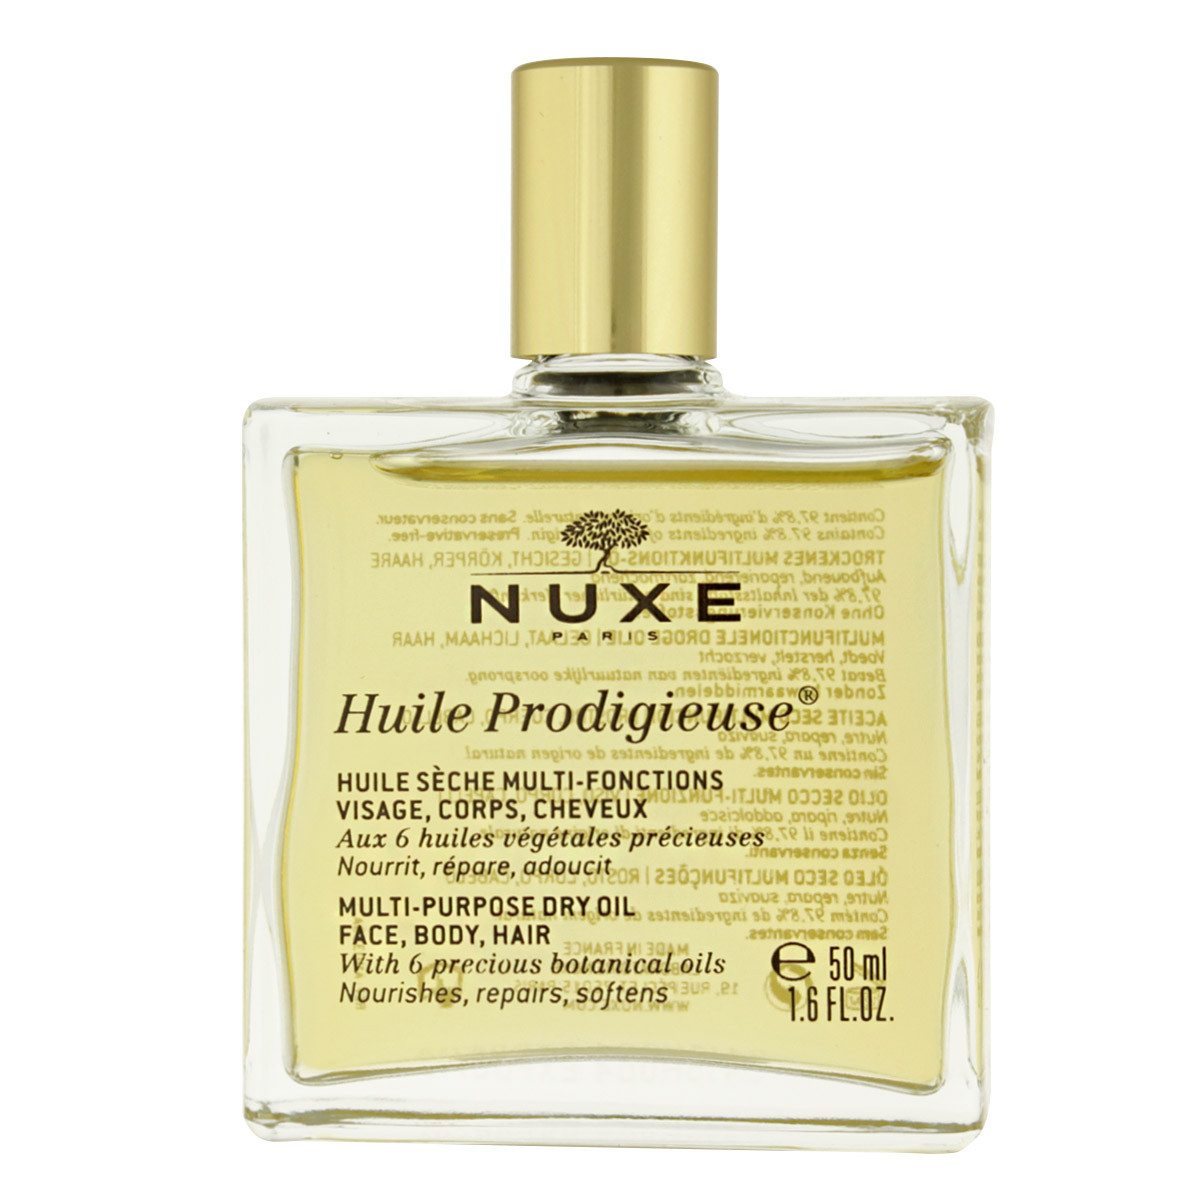 how to use nuxe dry oil